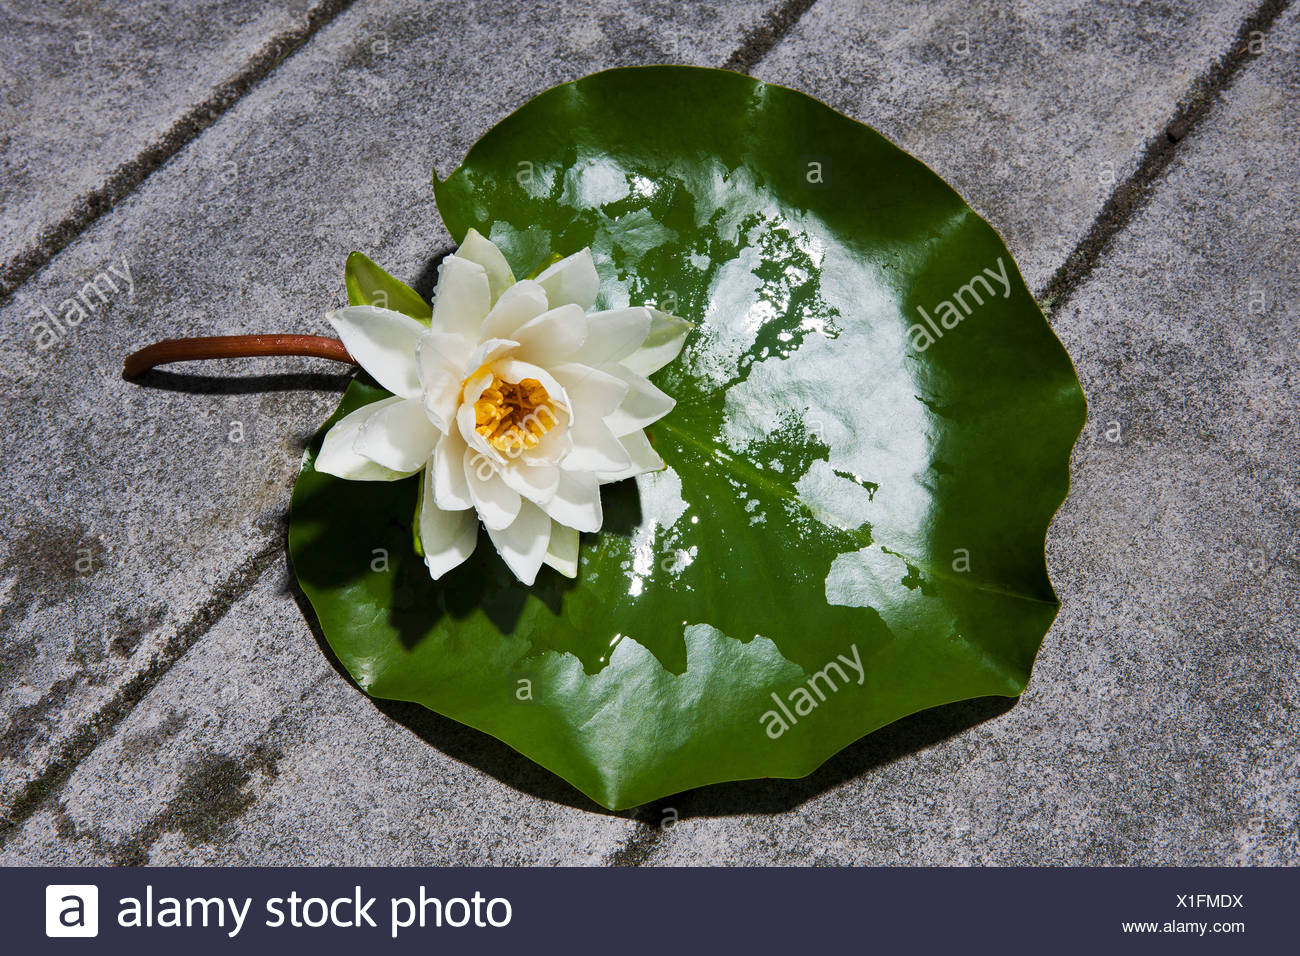 Water Lily Flower On Lily Pad Stock Photo 276325894 Alamy